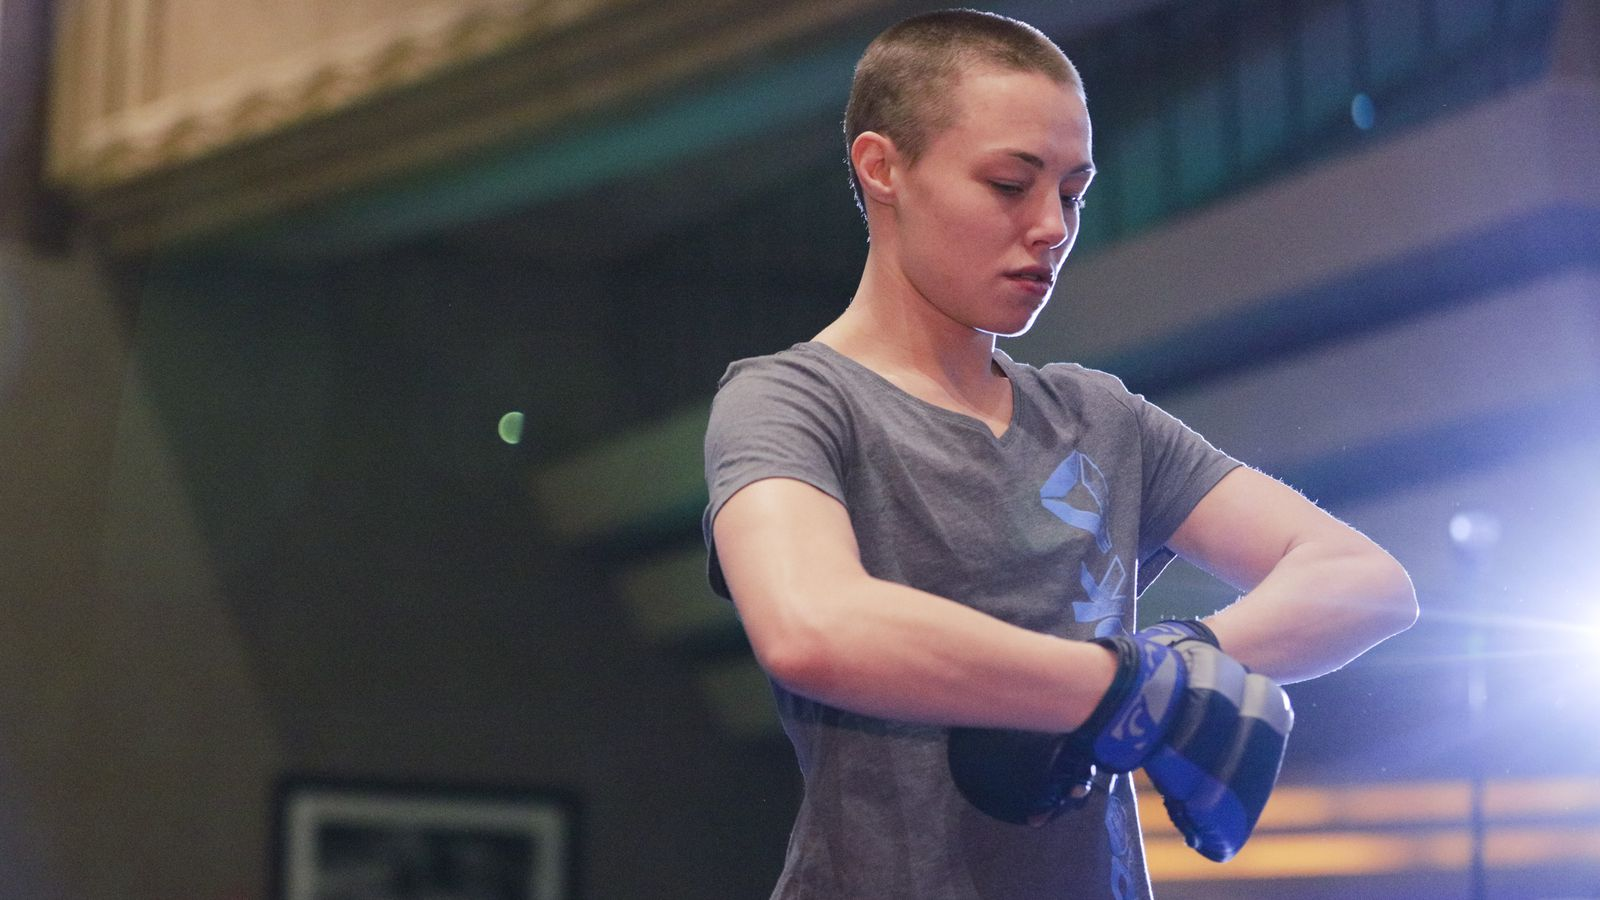 Rose Namajunas says she finds inspiration from Brock Lesnar, Conor ...: www.mmafighting.com/2016/1/2/10699768/rose-namajunas-says-she-finds...